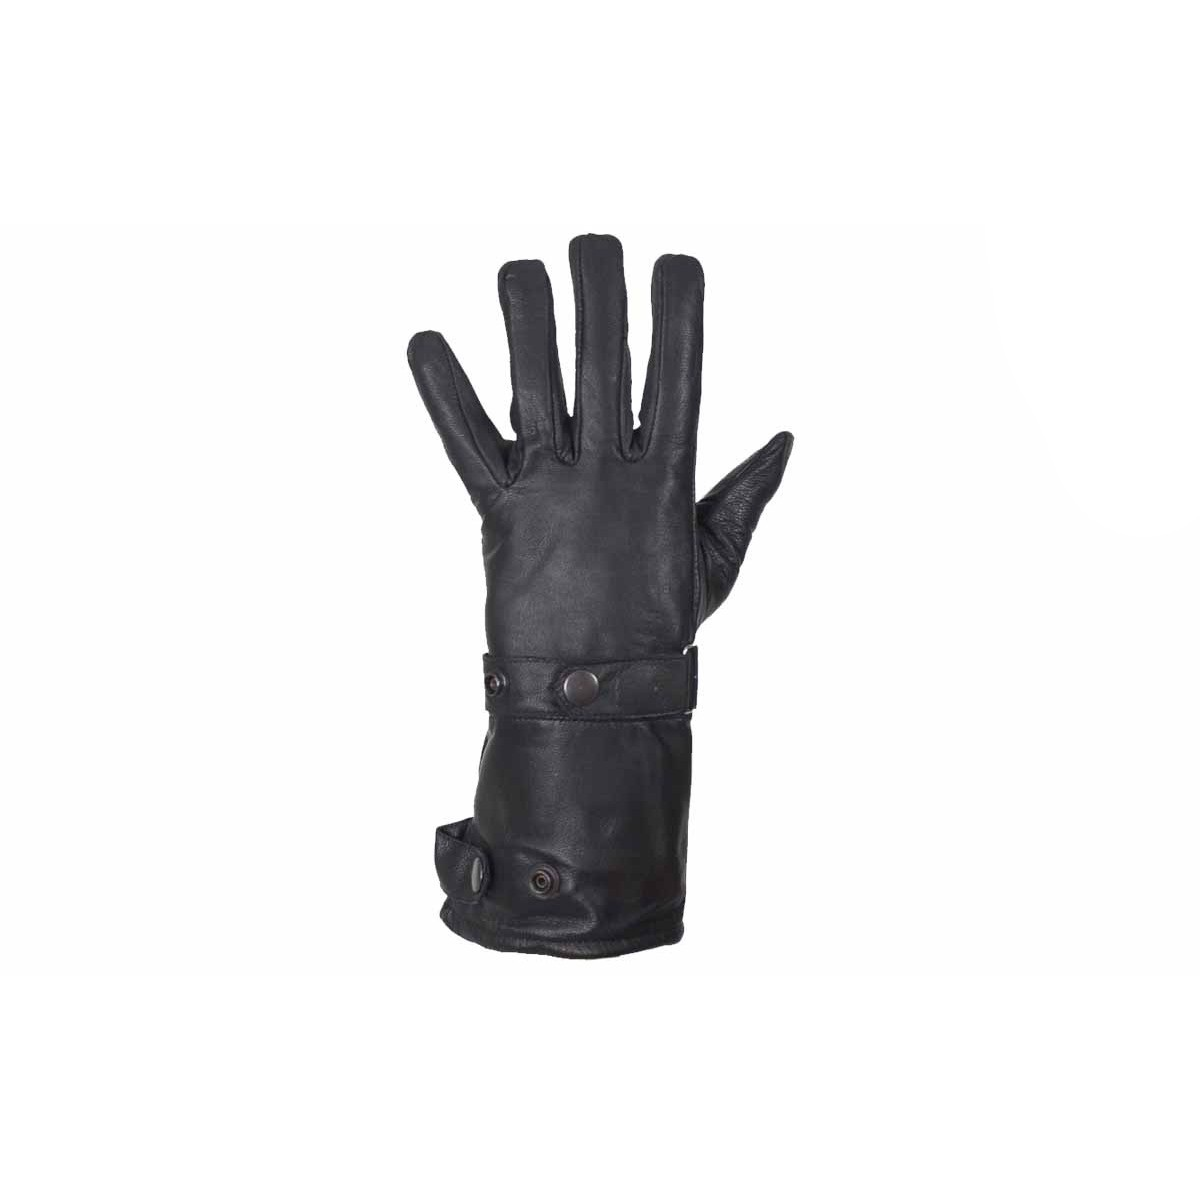 Long Leather Summer Motorcycle Gauntlet Glove